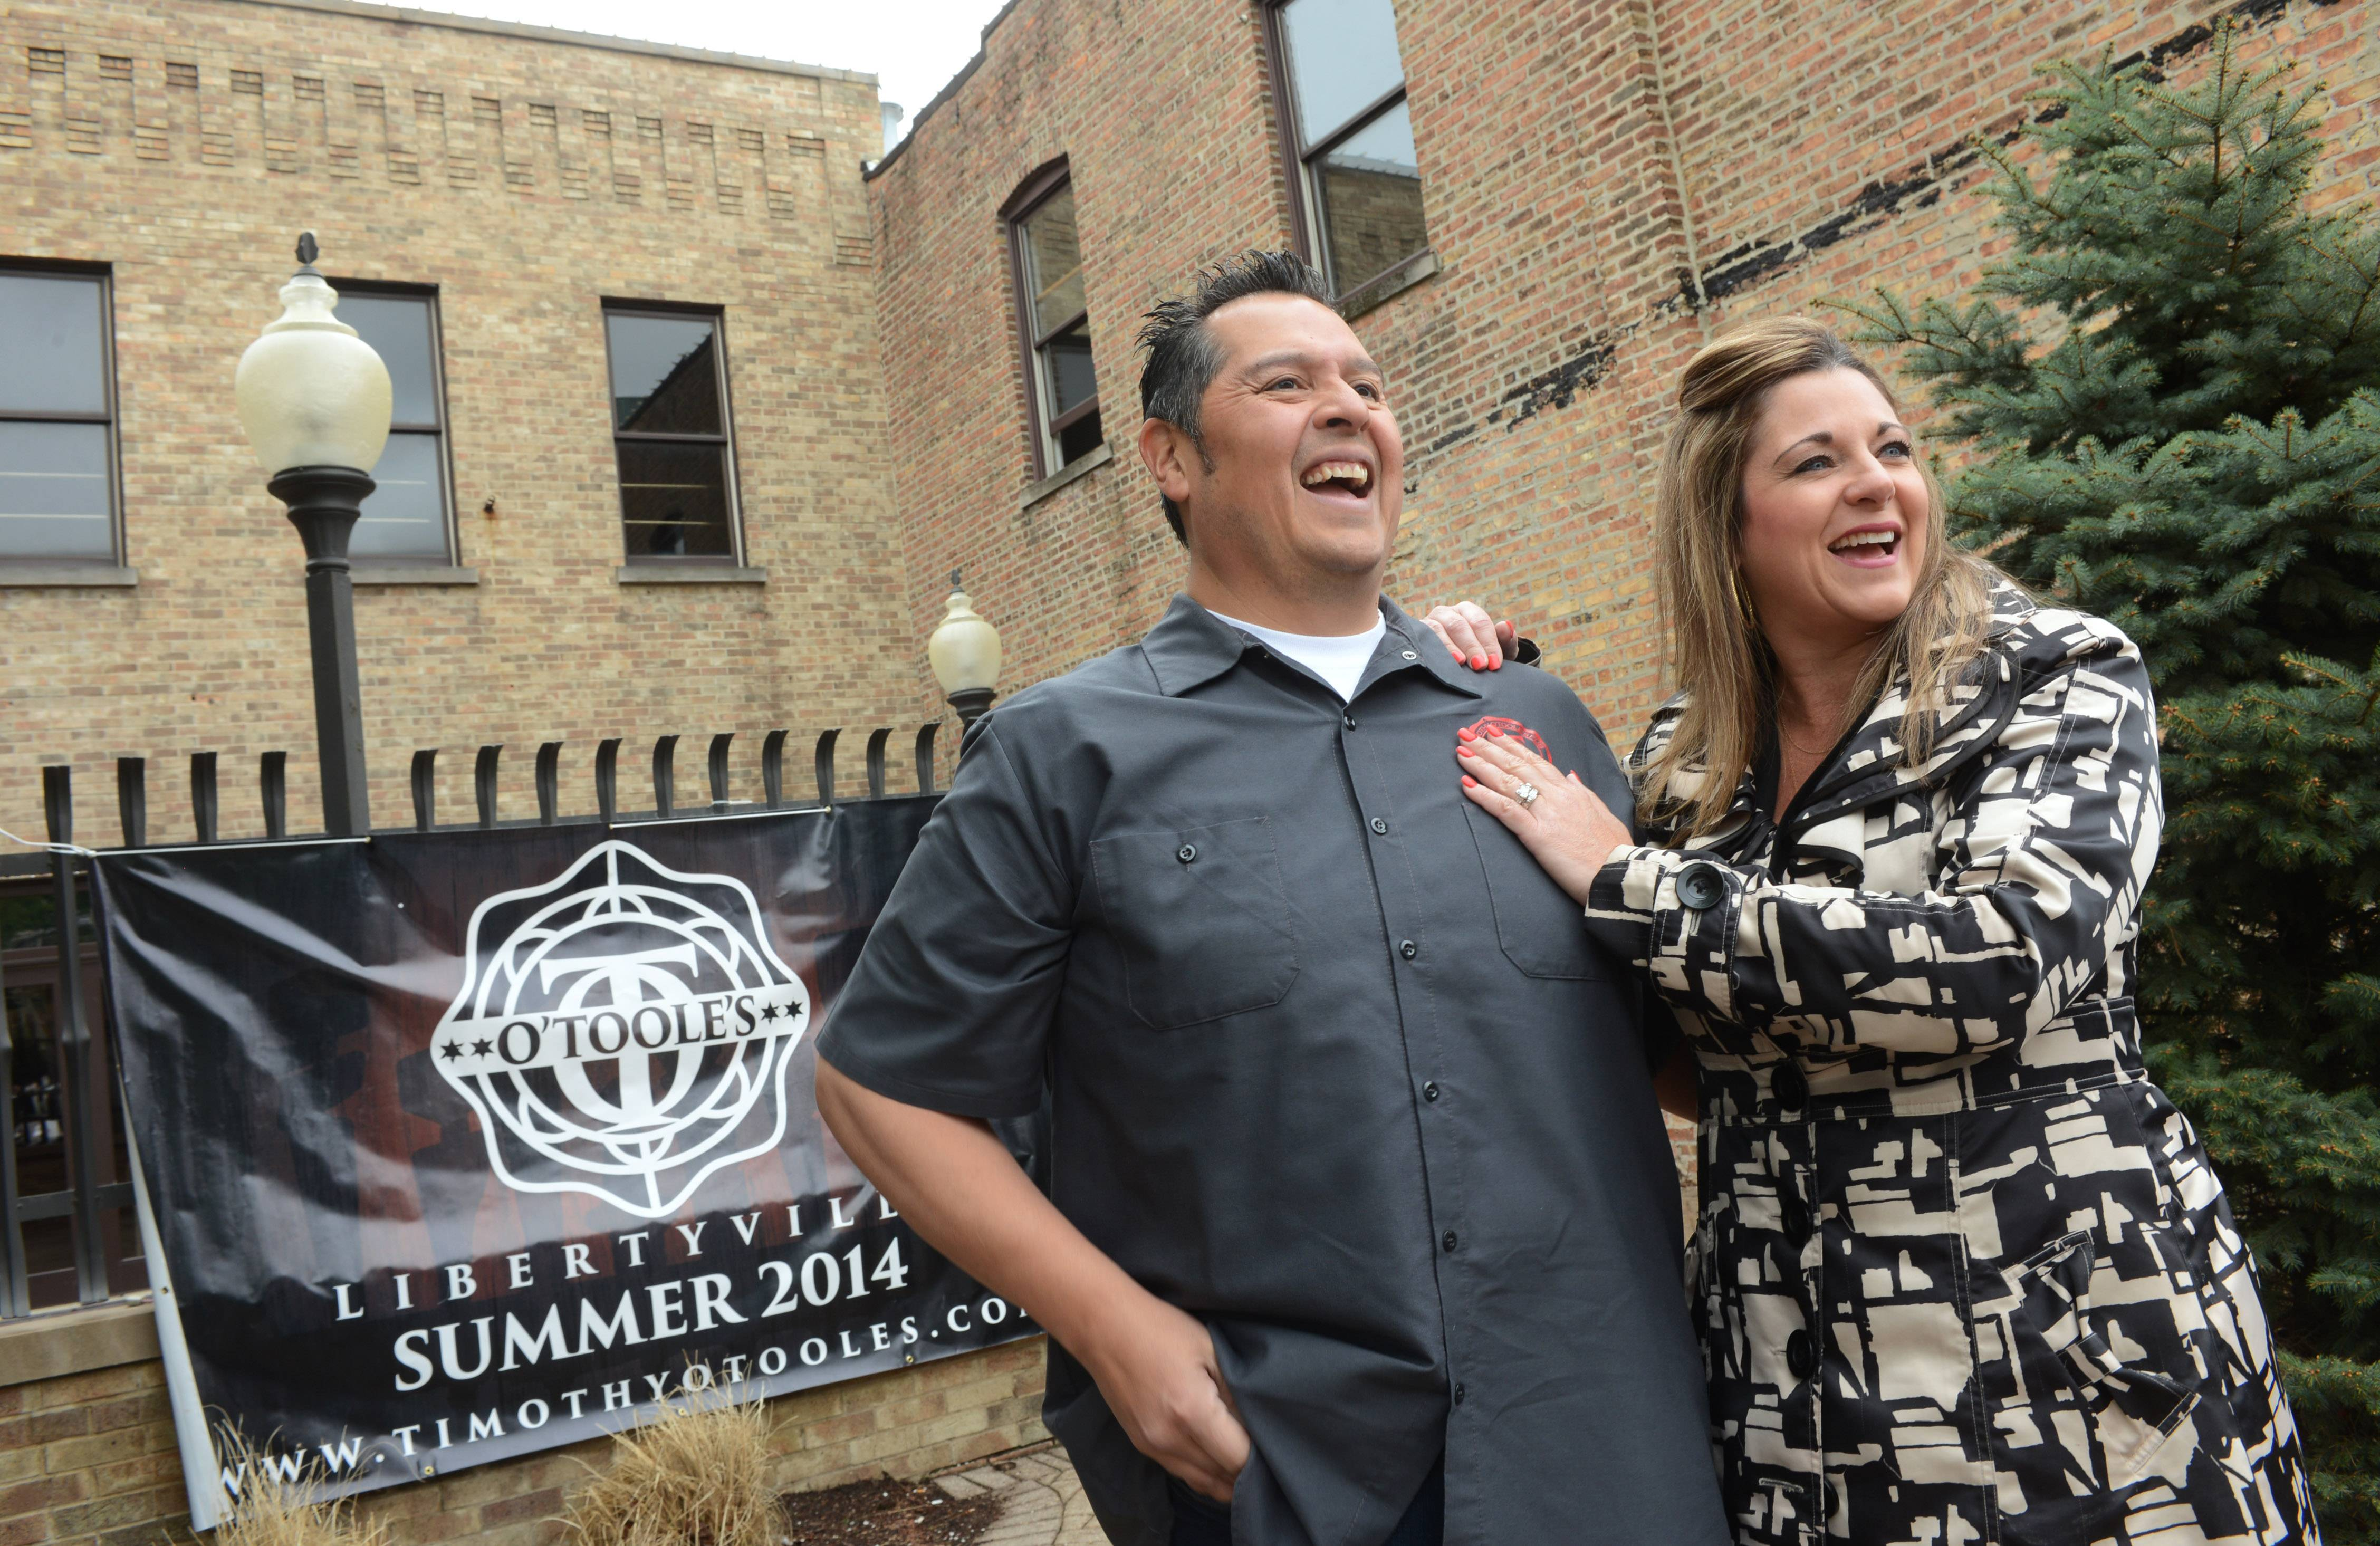 Humberto Martinez Jr. and his wife, Sara McKinnon, plan to open O'Toole's of Libertyville in the former Mickey Finn's location on Milwaukee Avenue in the downtown area.